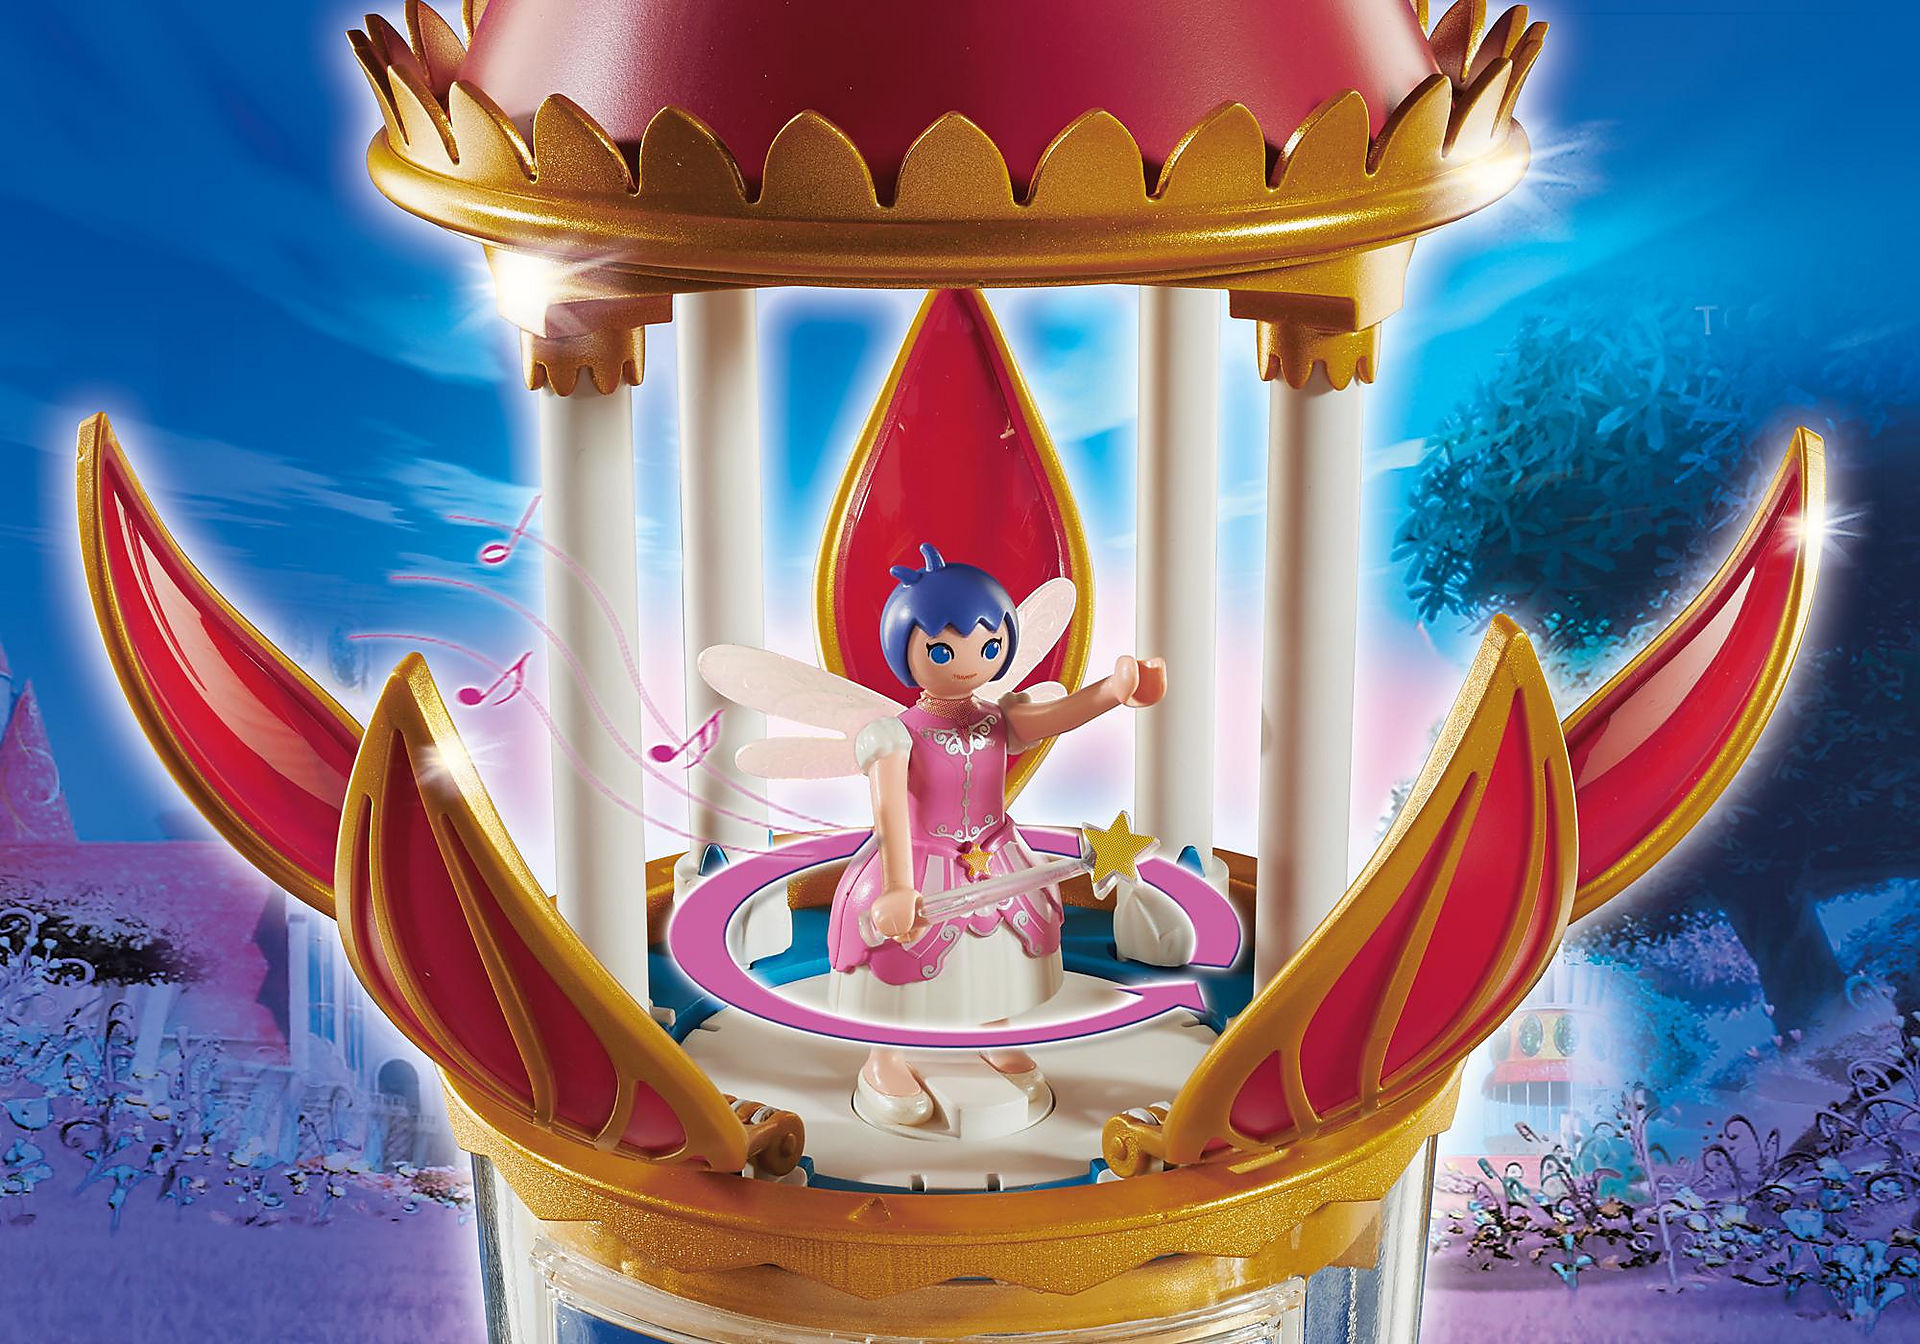 http://media.playmobil.com/i/playmobil/6688_product_extra1/Musical Flower Tower with Twinkle